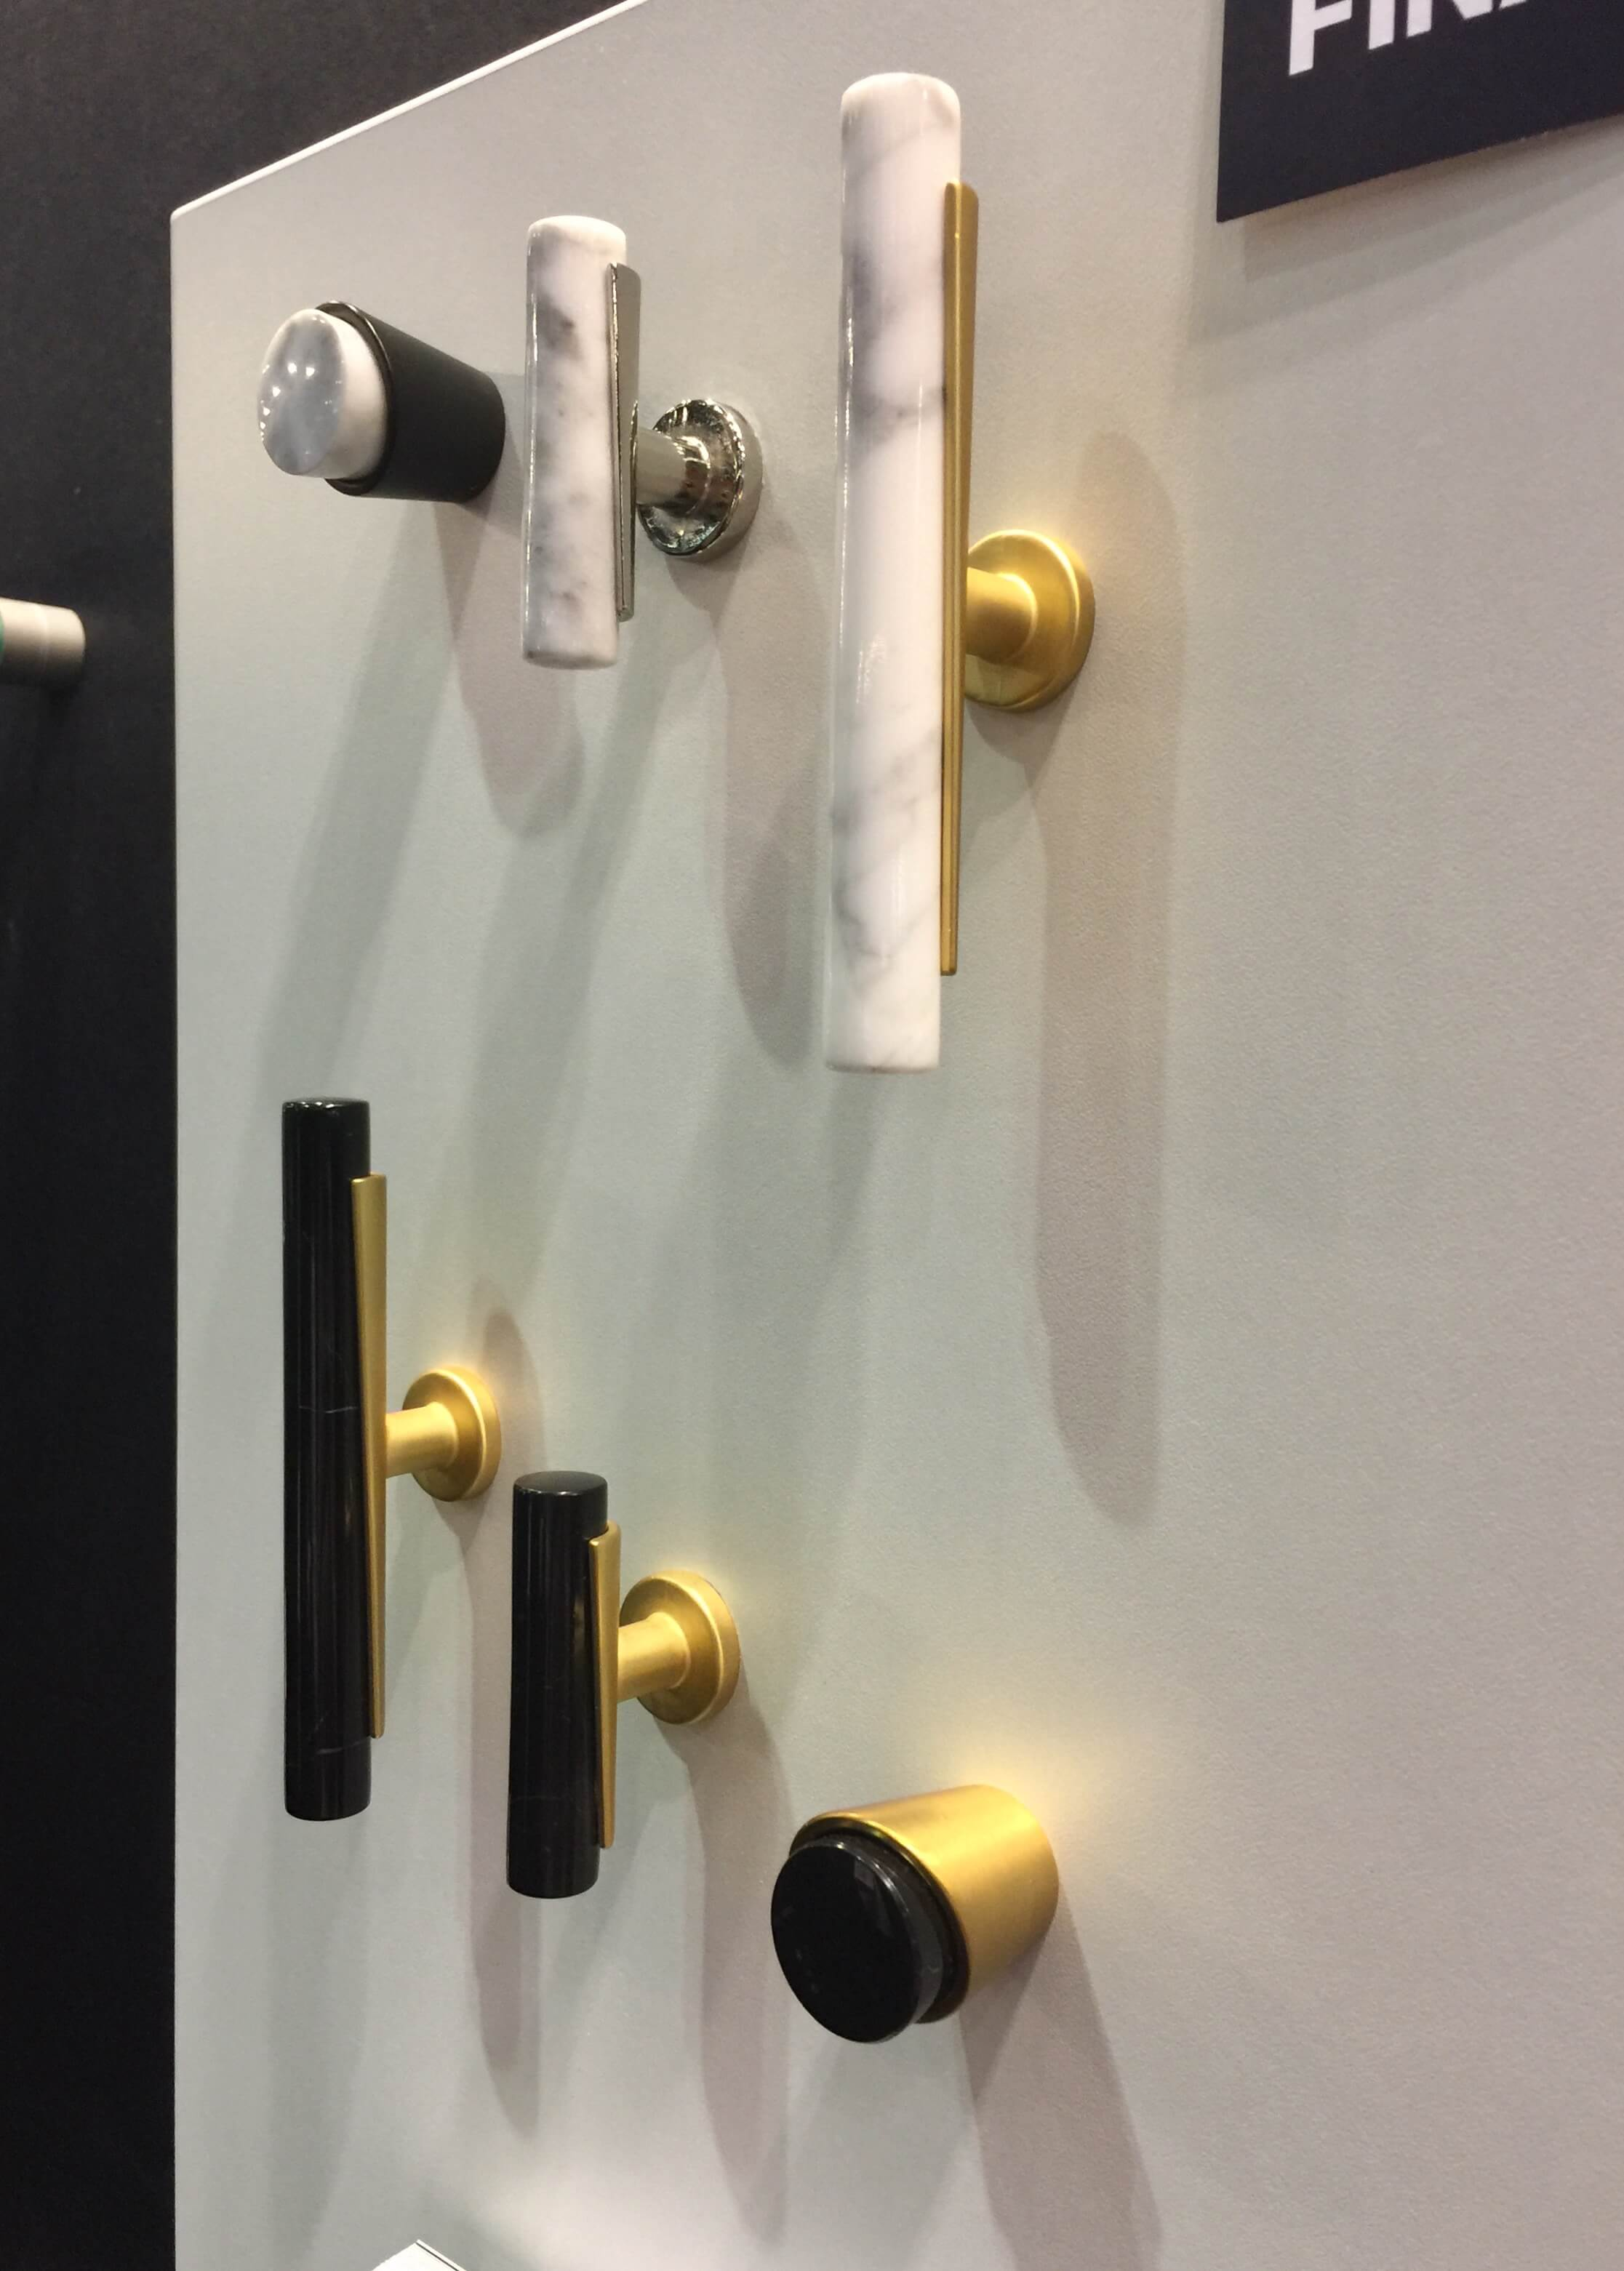 Cabinet pulls from Belwith-Keeler in black, white and brass, with asymmetrical details #cabinetpulls #hardware